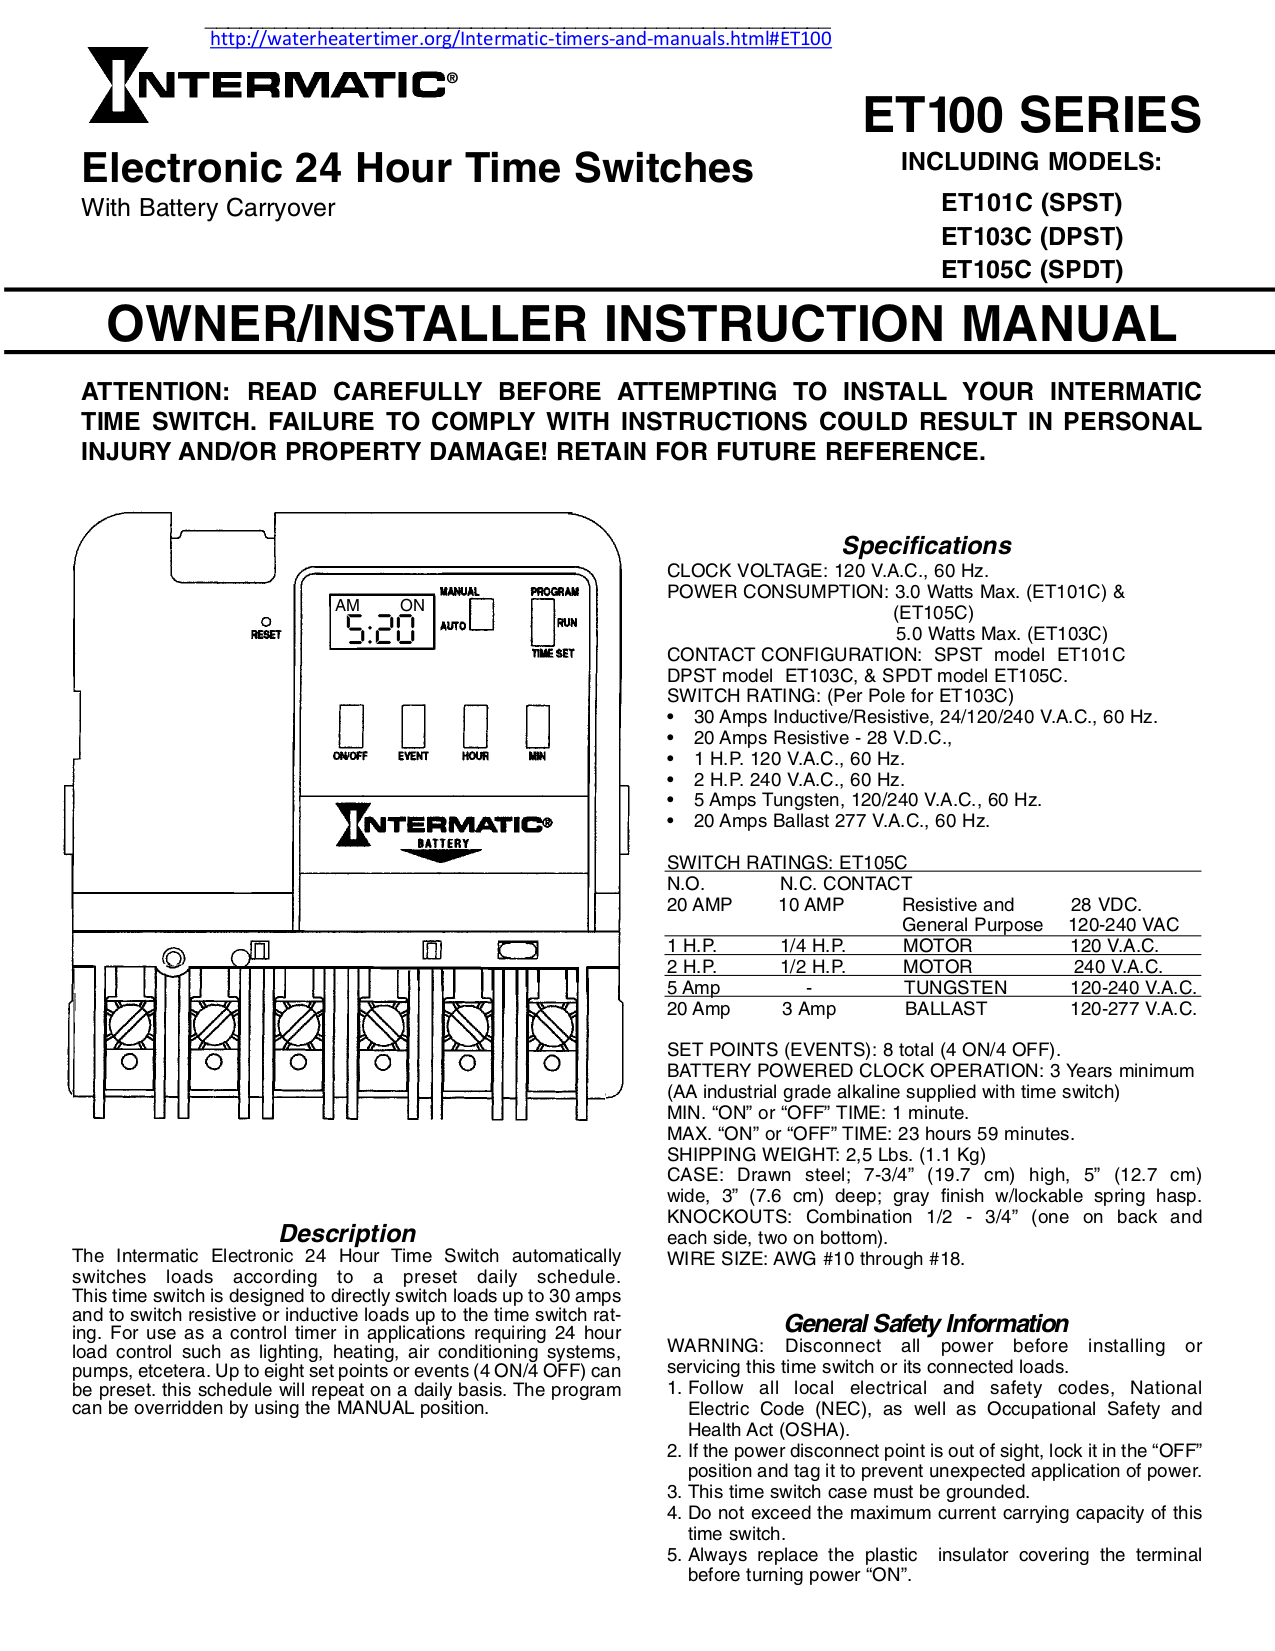 Download Free Pdf For Intermatic Et101c Time Switches Other Manual